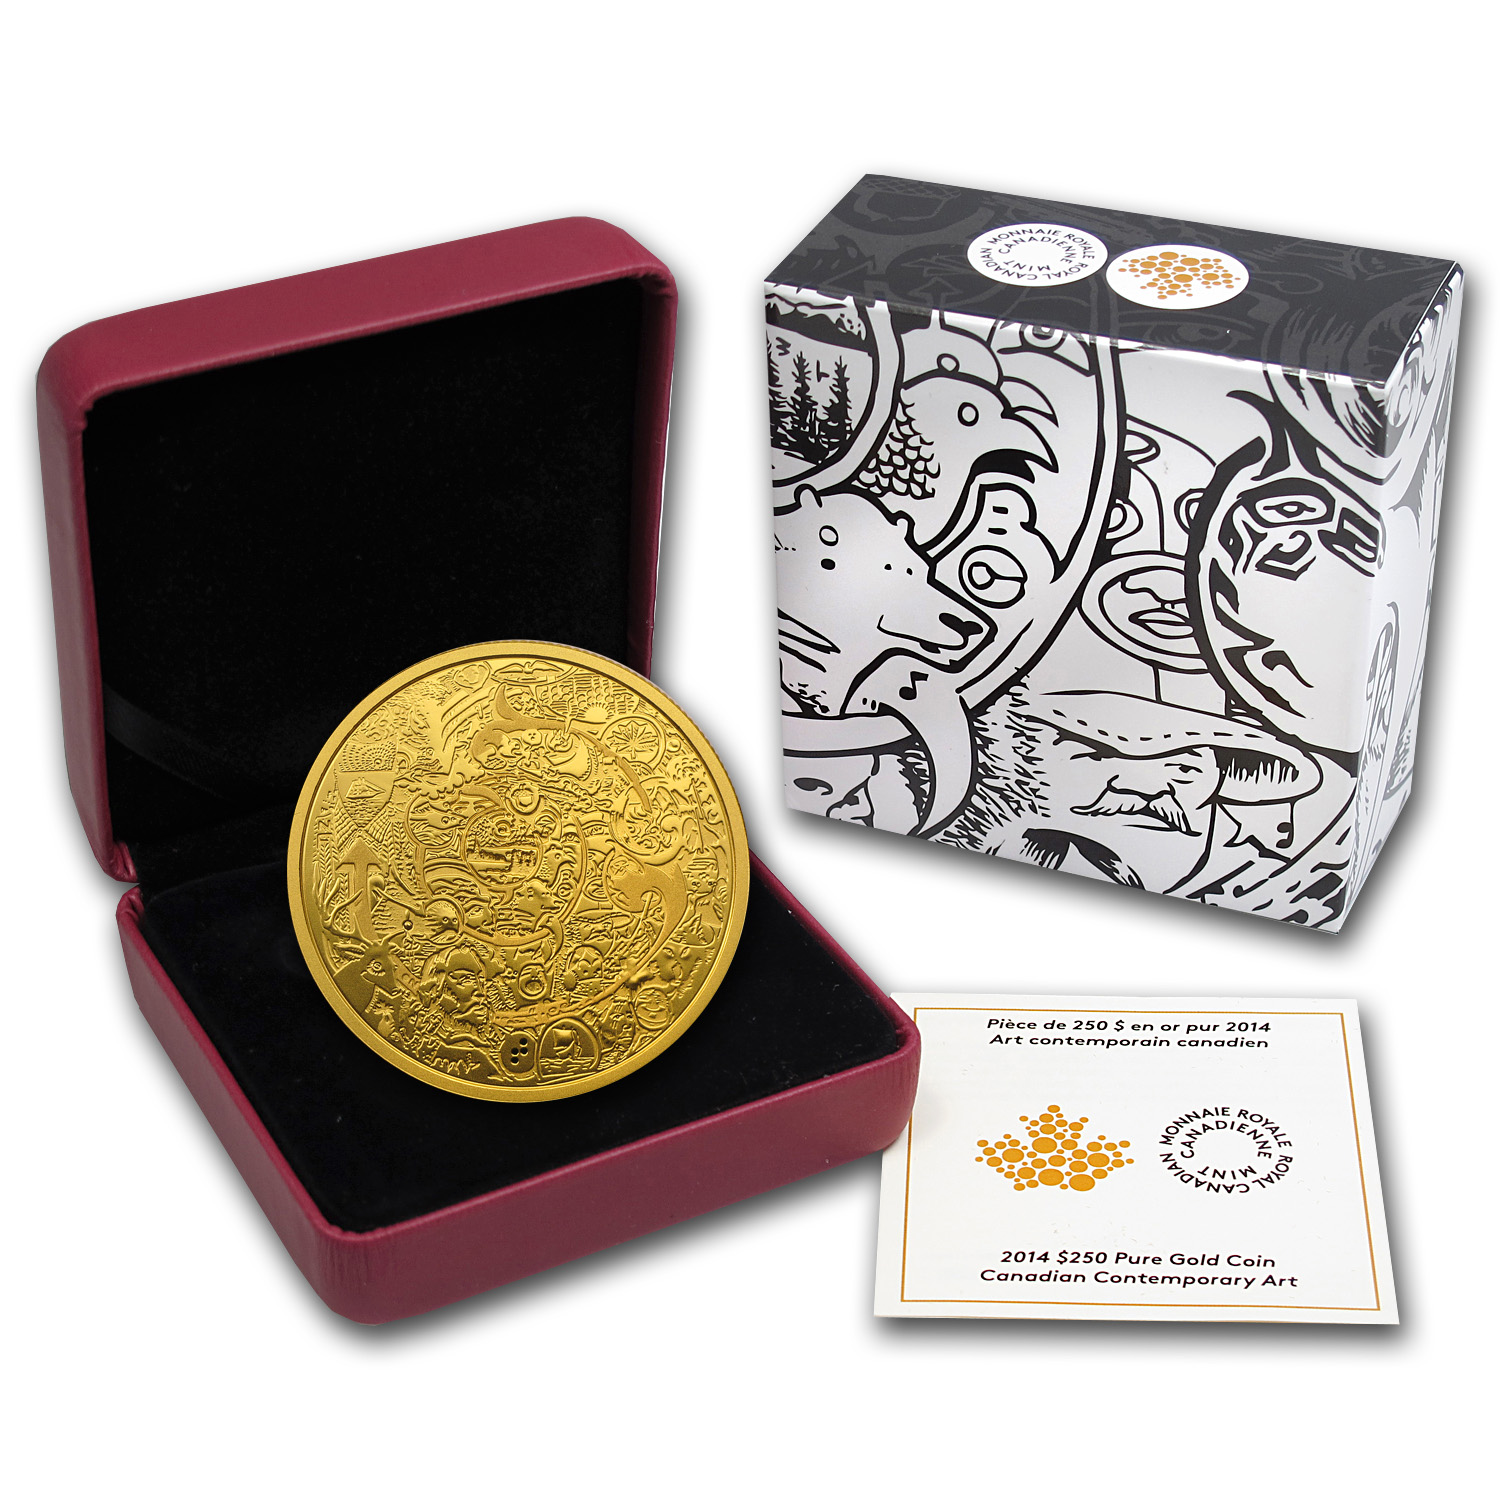 2014 Canada 2 oz Proof Gold $250 Canadian Contemporary Art